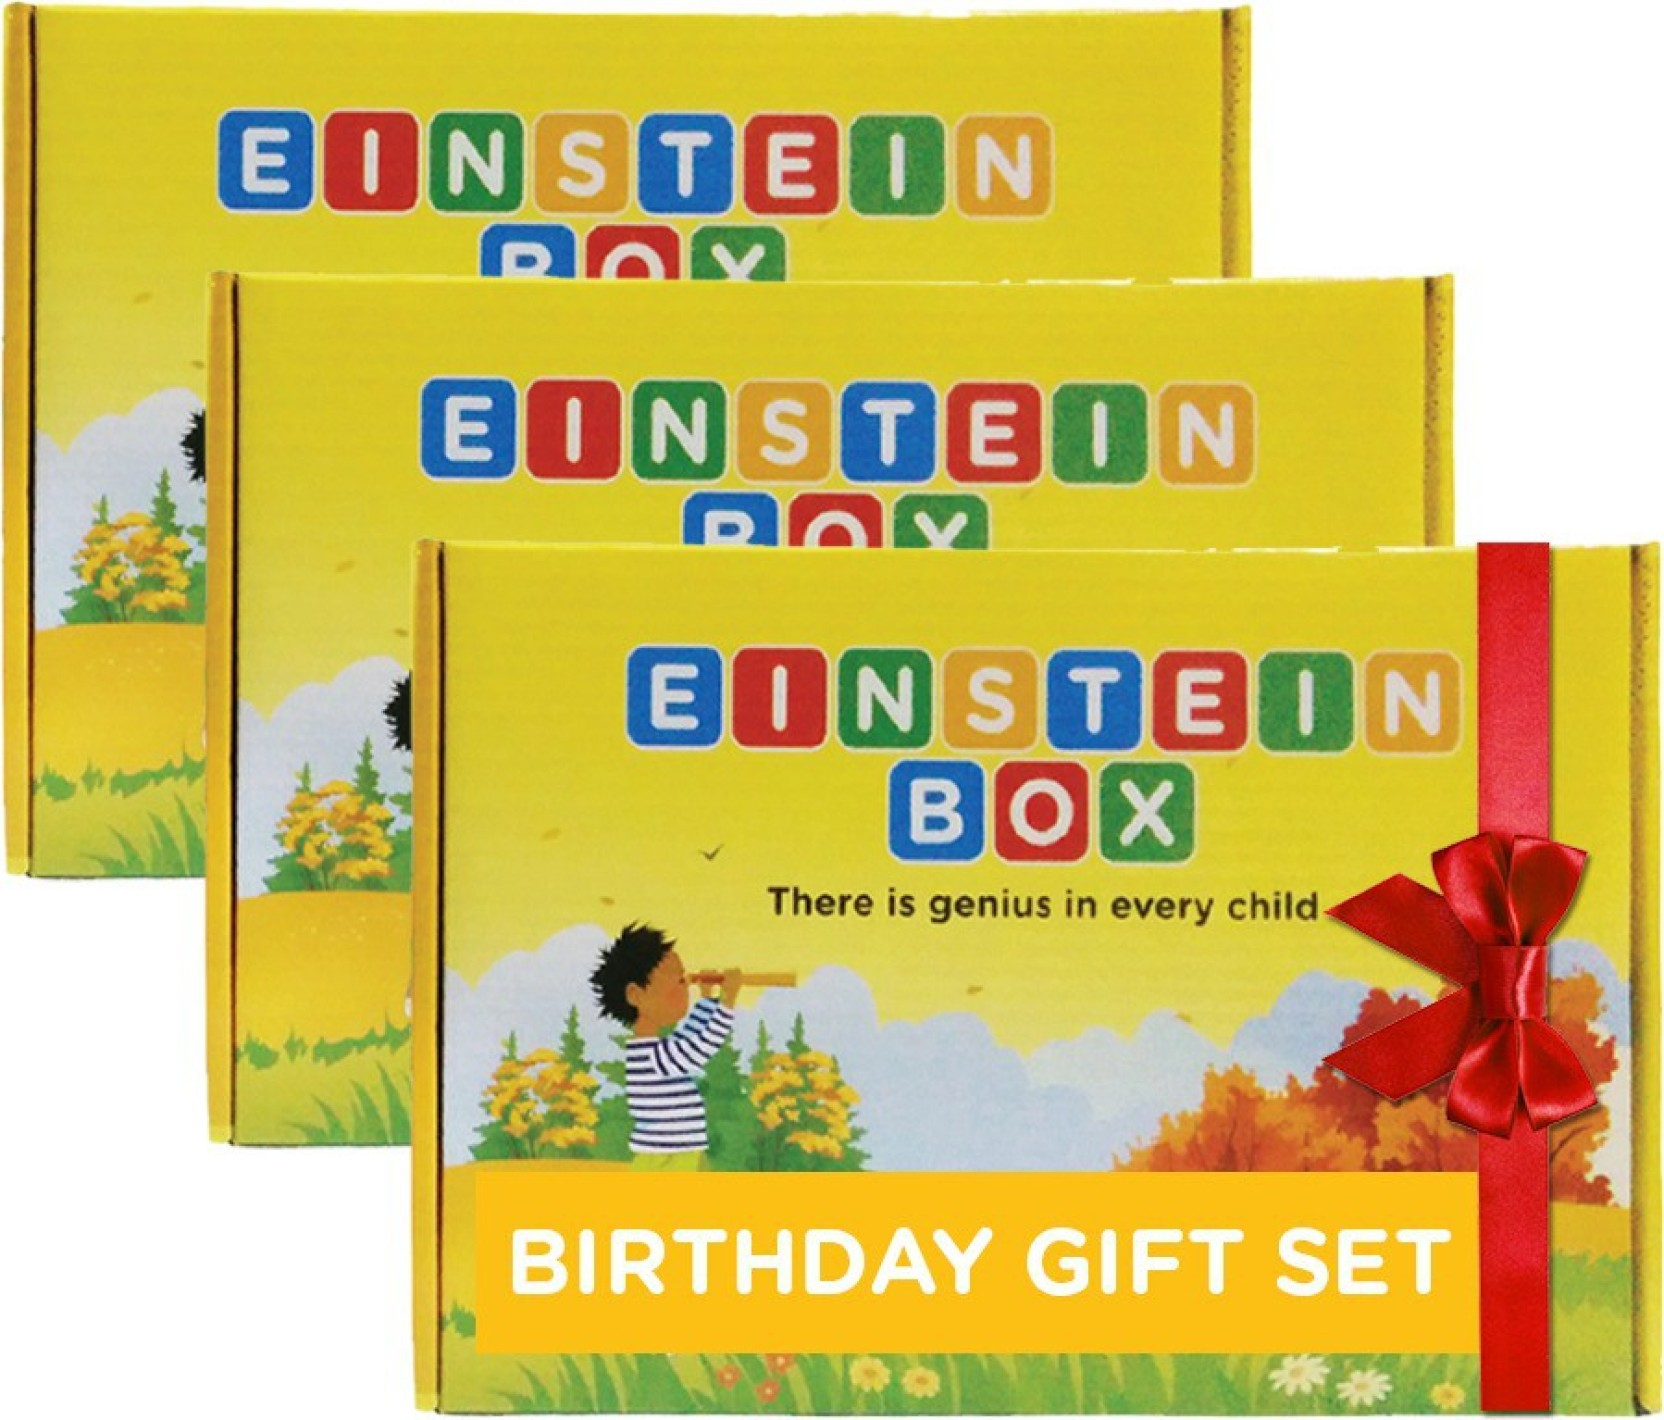 Einstein Box Birthday Gift Set For 4 To 6 Year Old Boys Girls 3 ADD TO CART